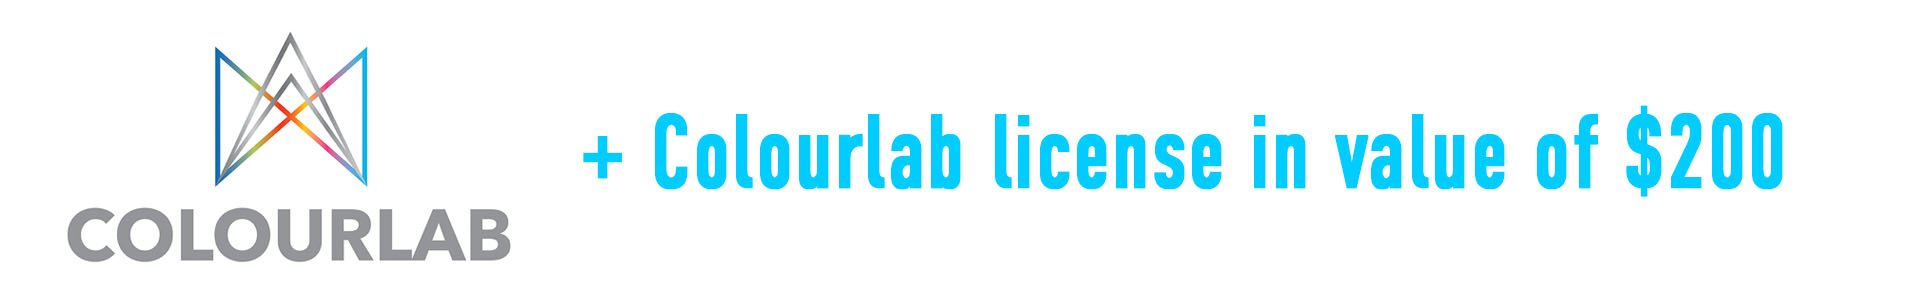 colourlab banner-licincluded